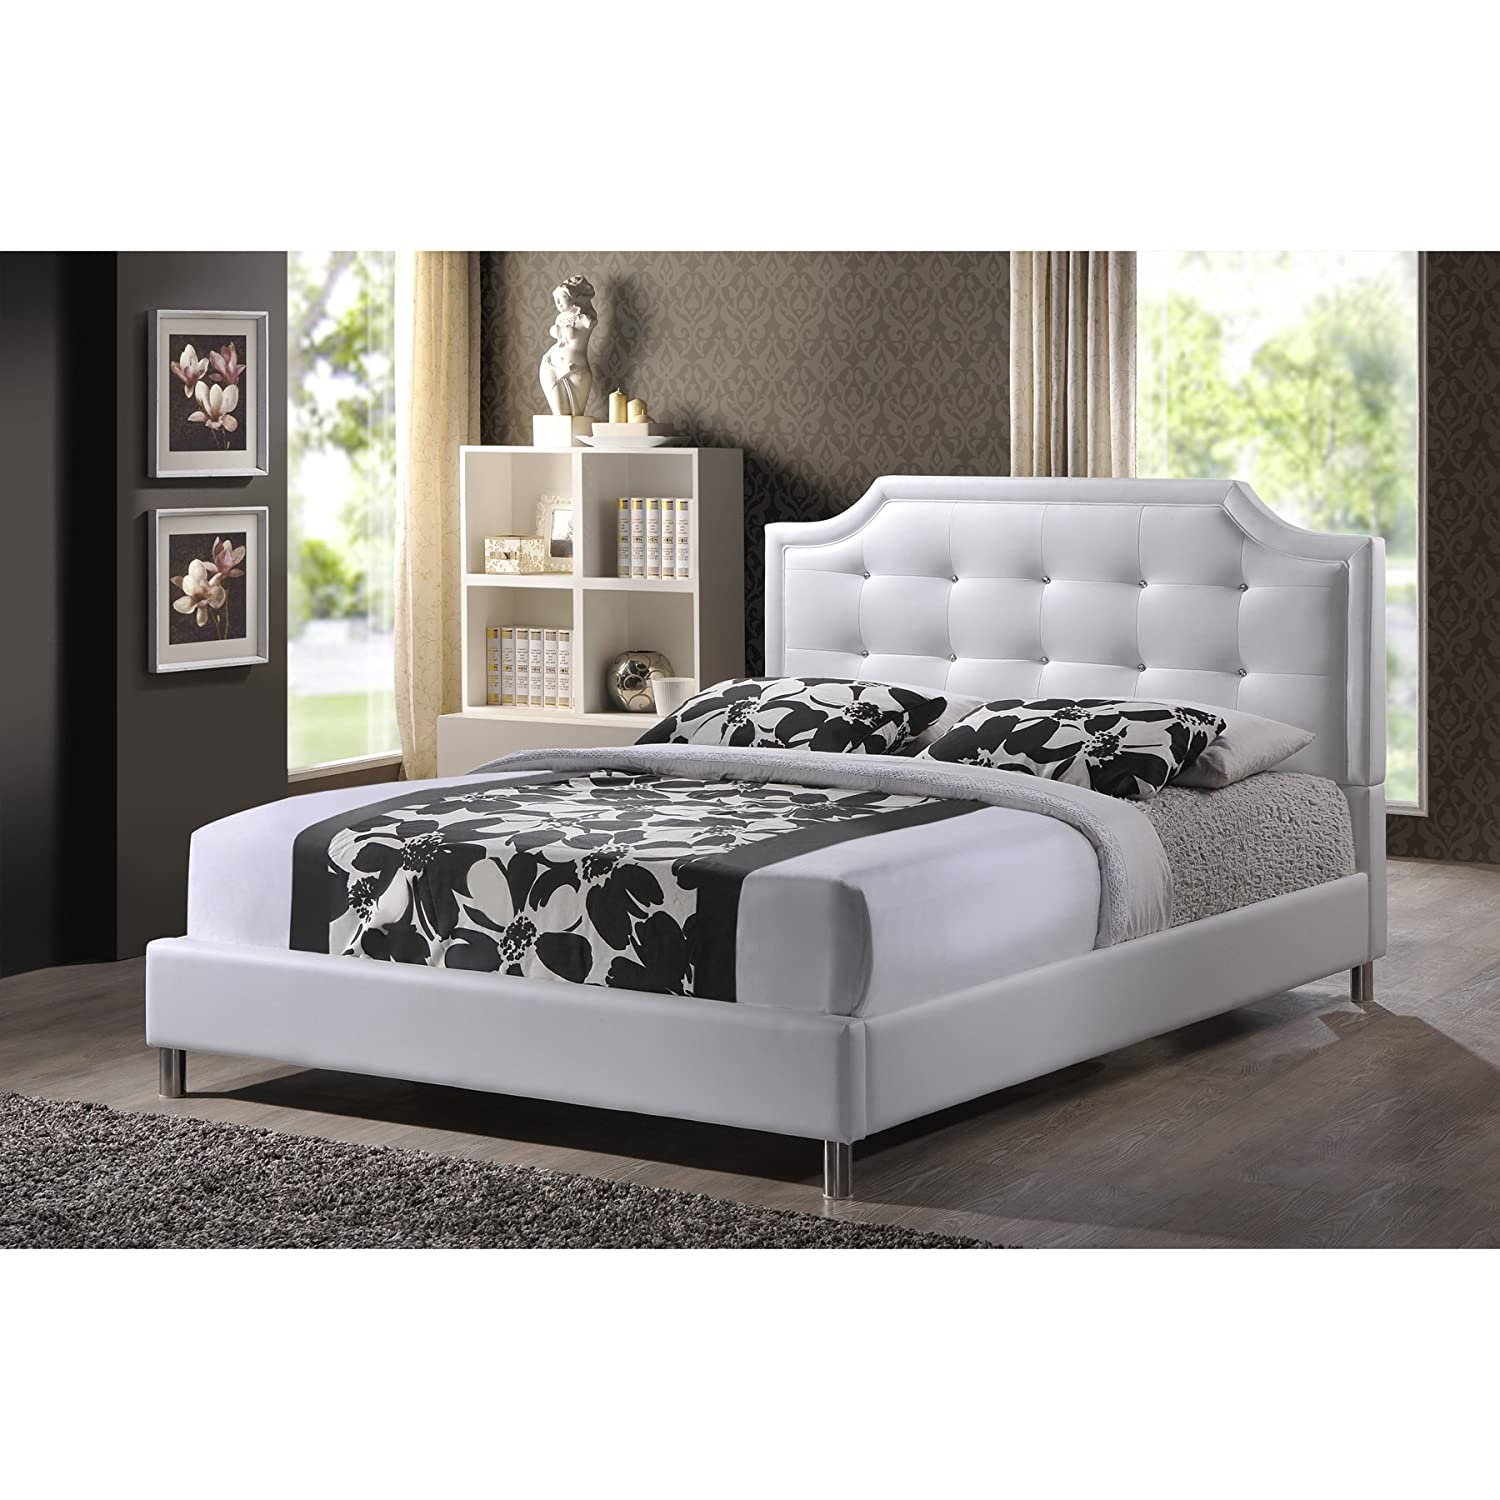 amazoncom baxton studio carlotta modern bed with upholstered headboardwhite king kitchen  dining. amazoncom baxton studio carlotta modern bed with upholstered